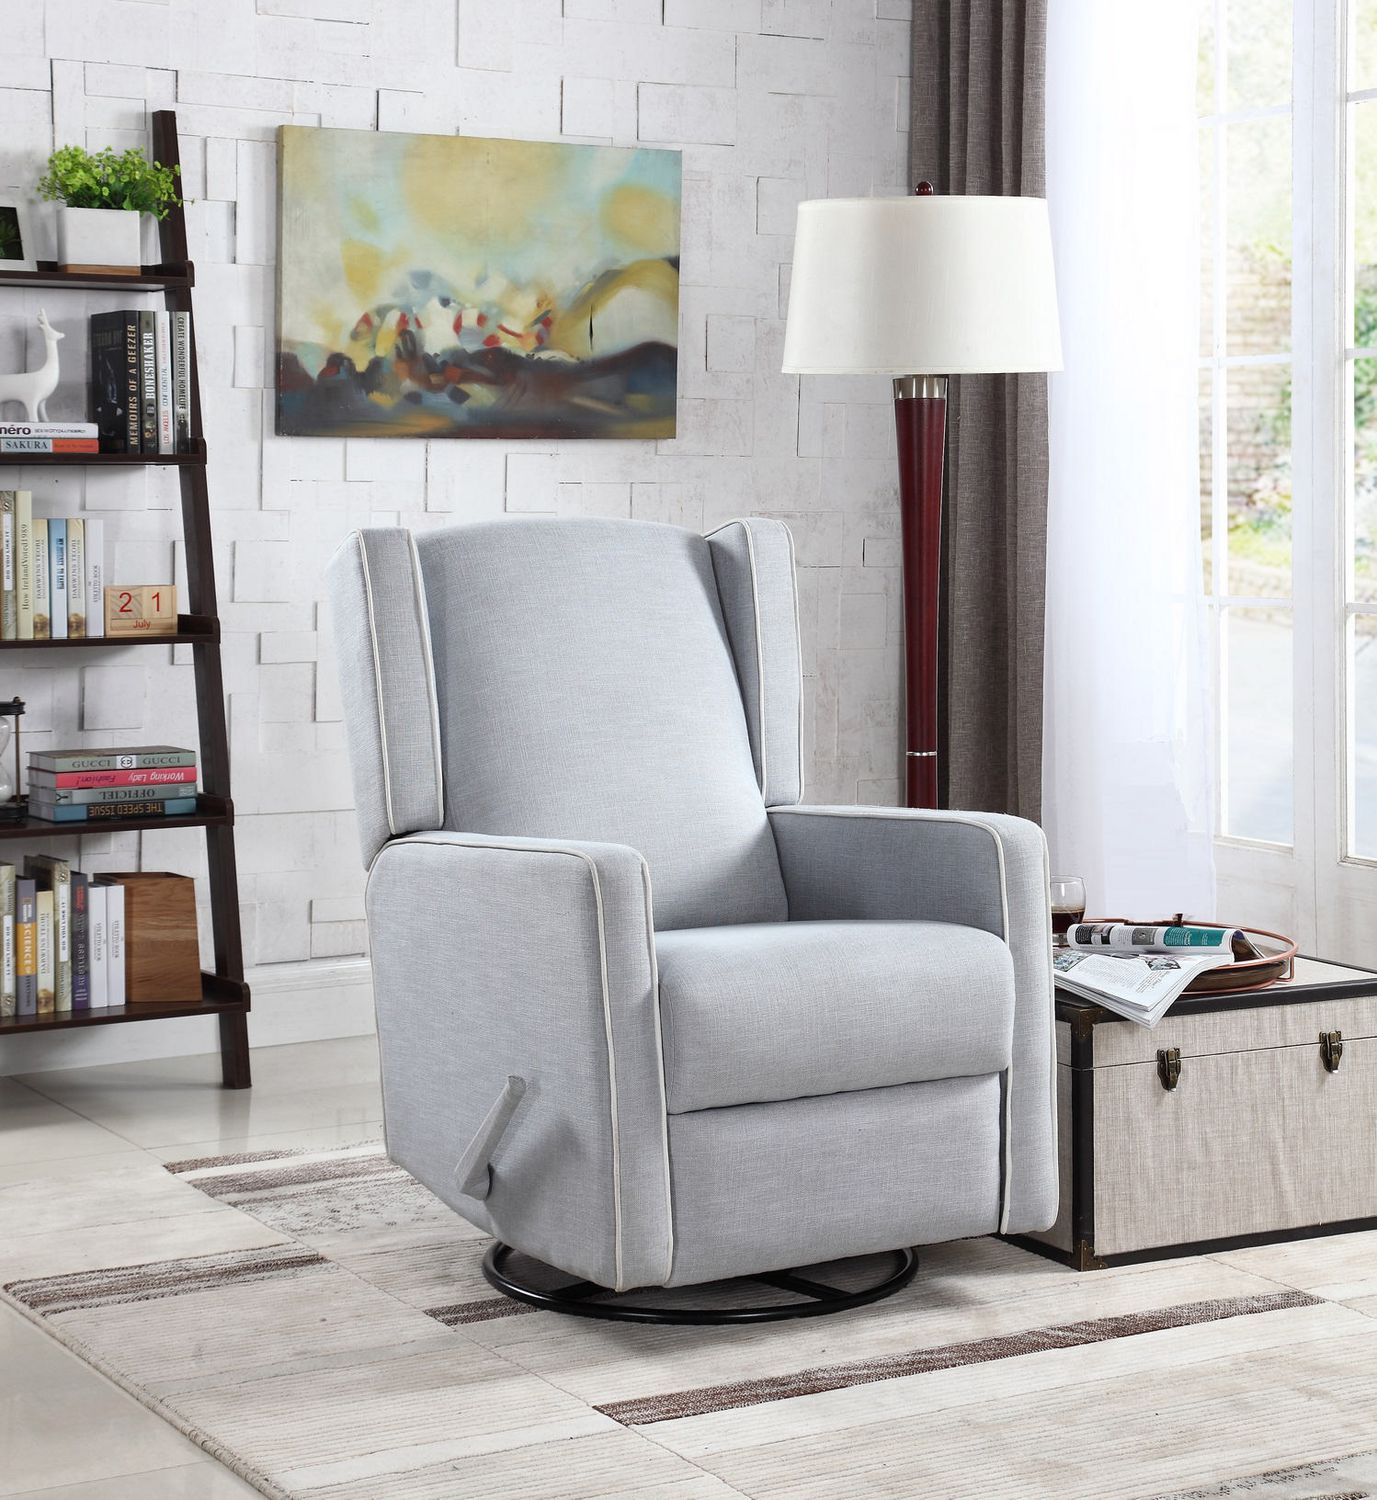 nursery inspirational petite glider best furnishings recliner rocker by home chair recliners of swivel